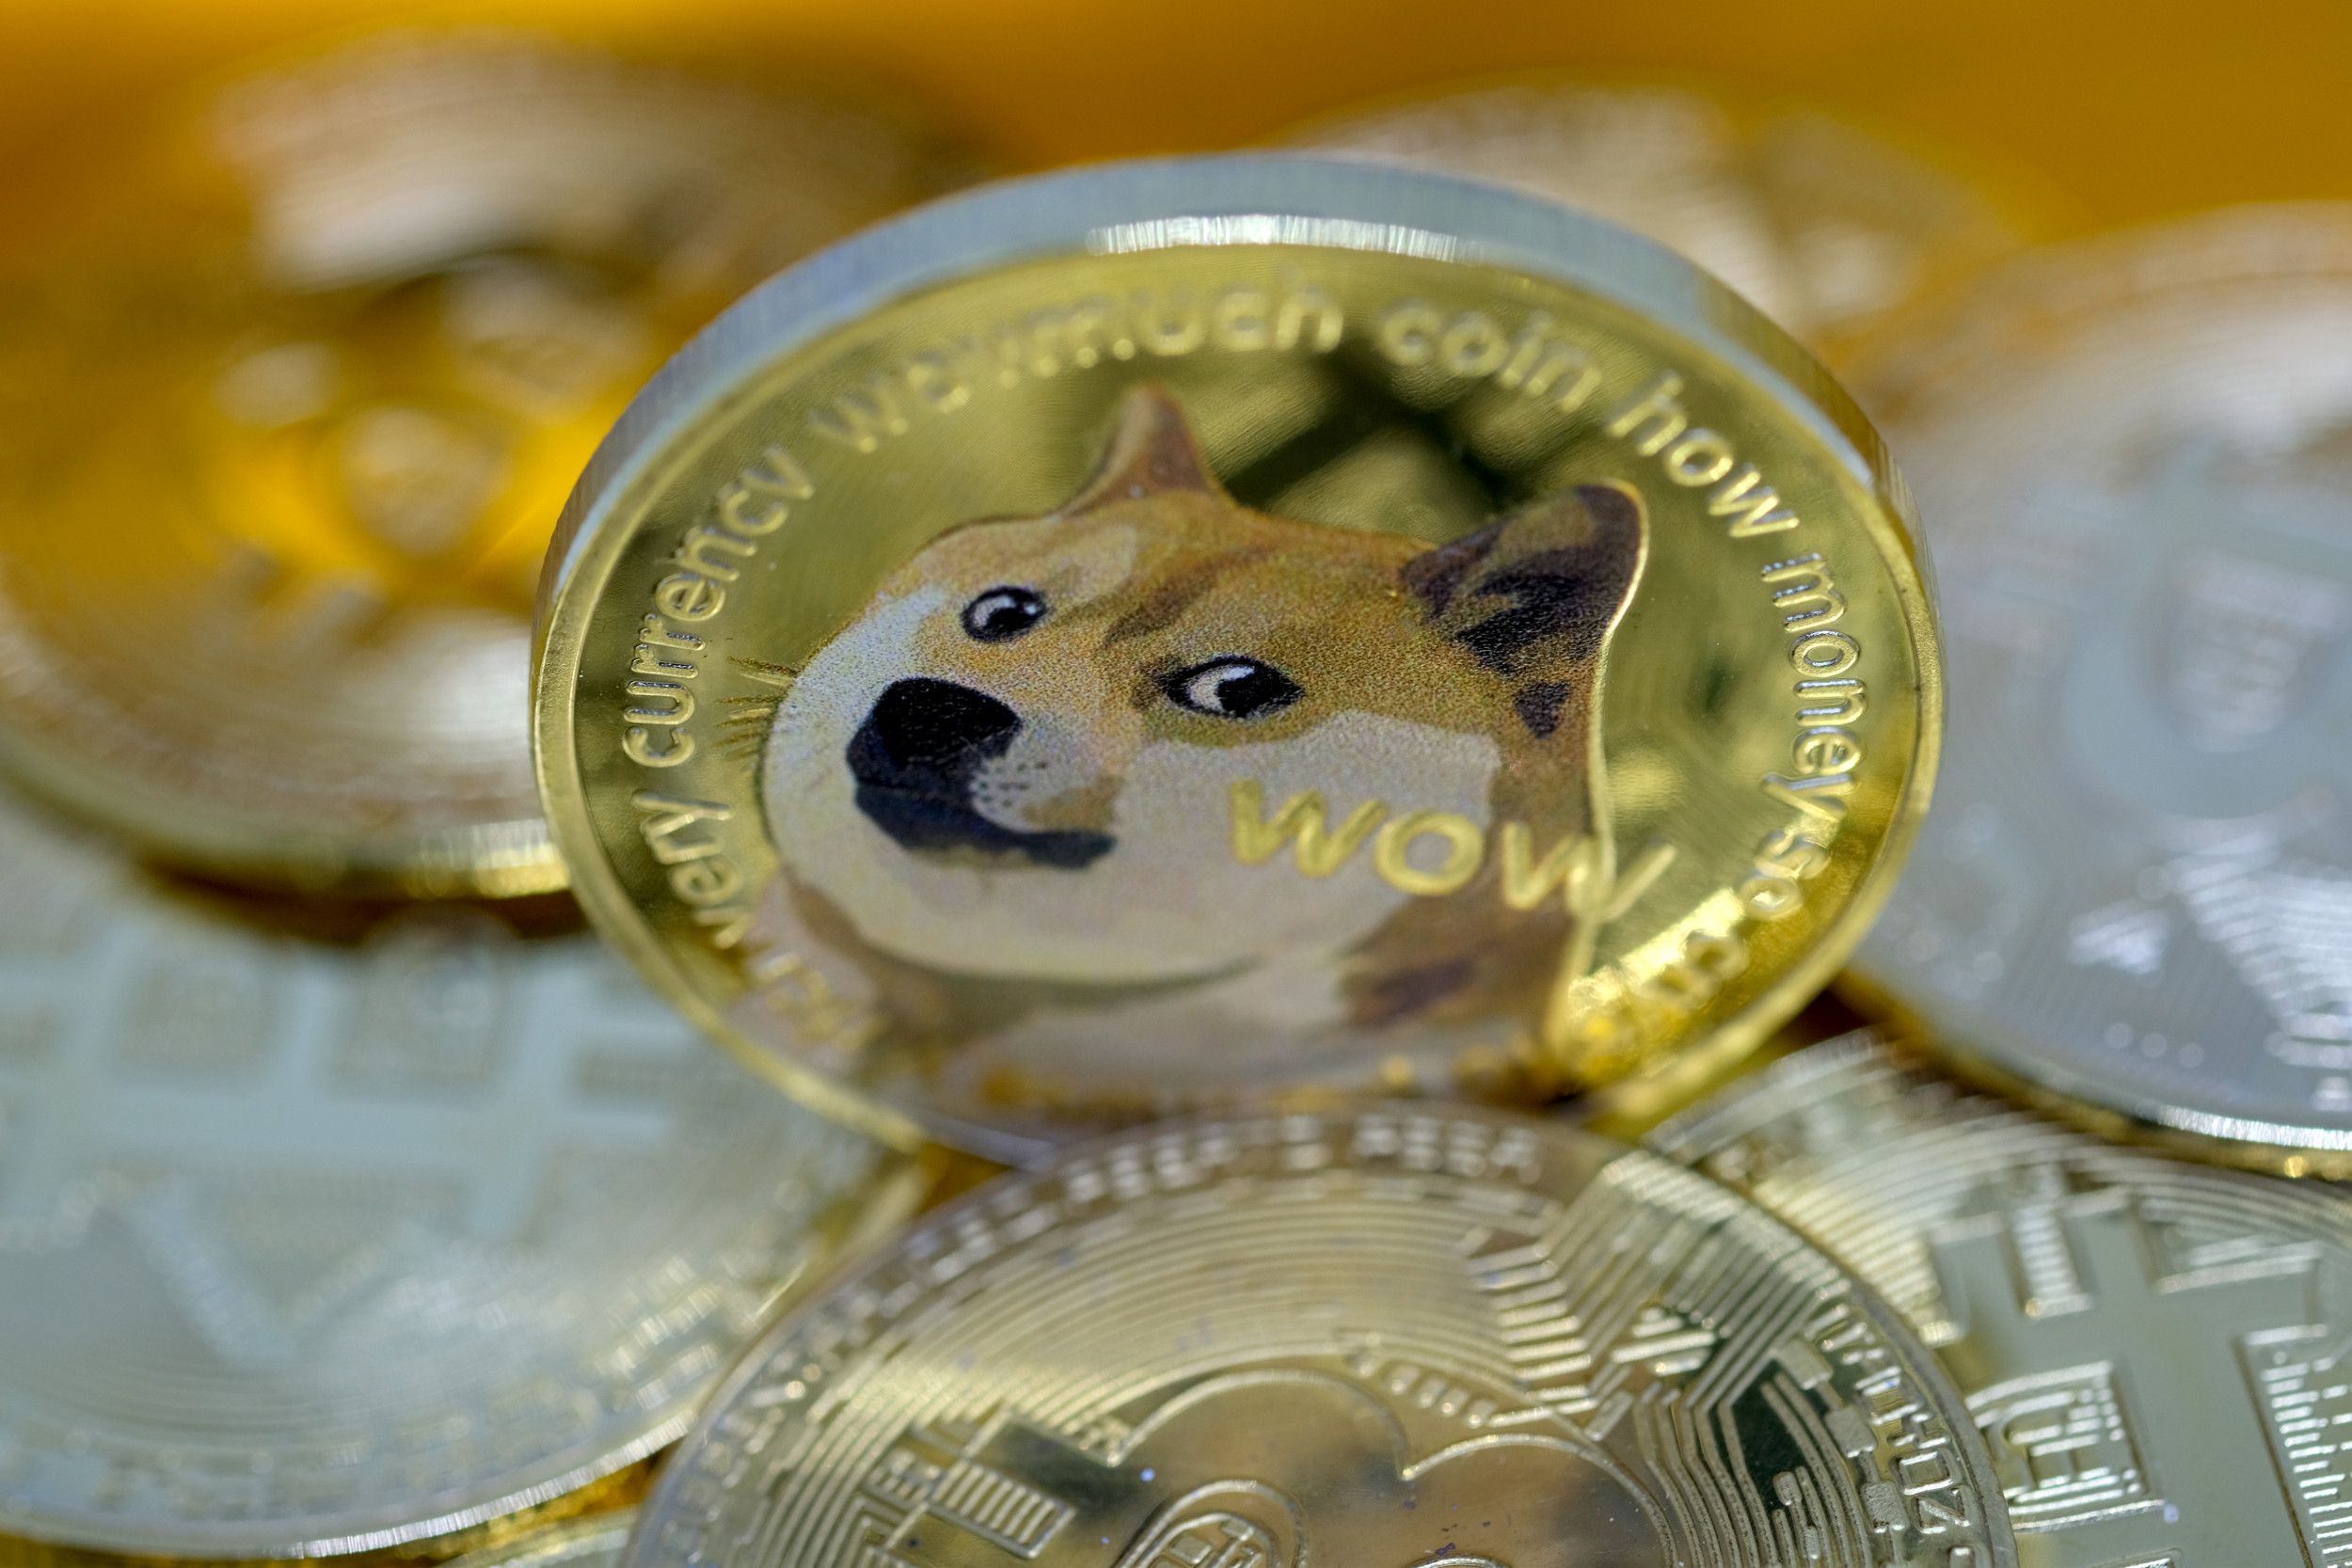 Mining Dogecoin Explained As 129 Billion Tokens in Circulation